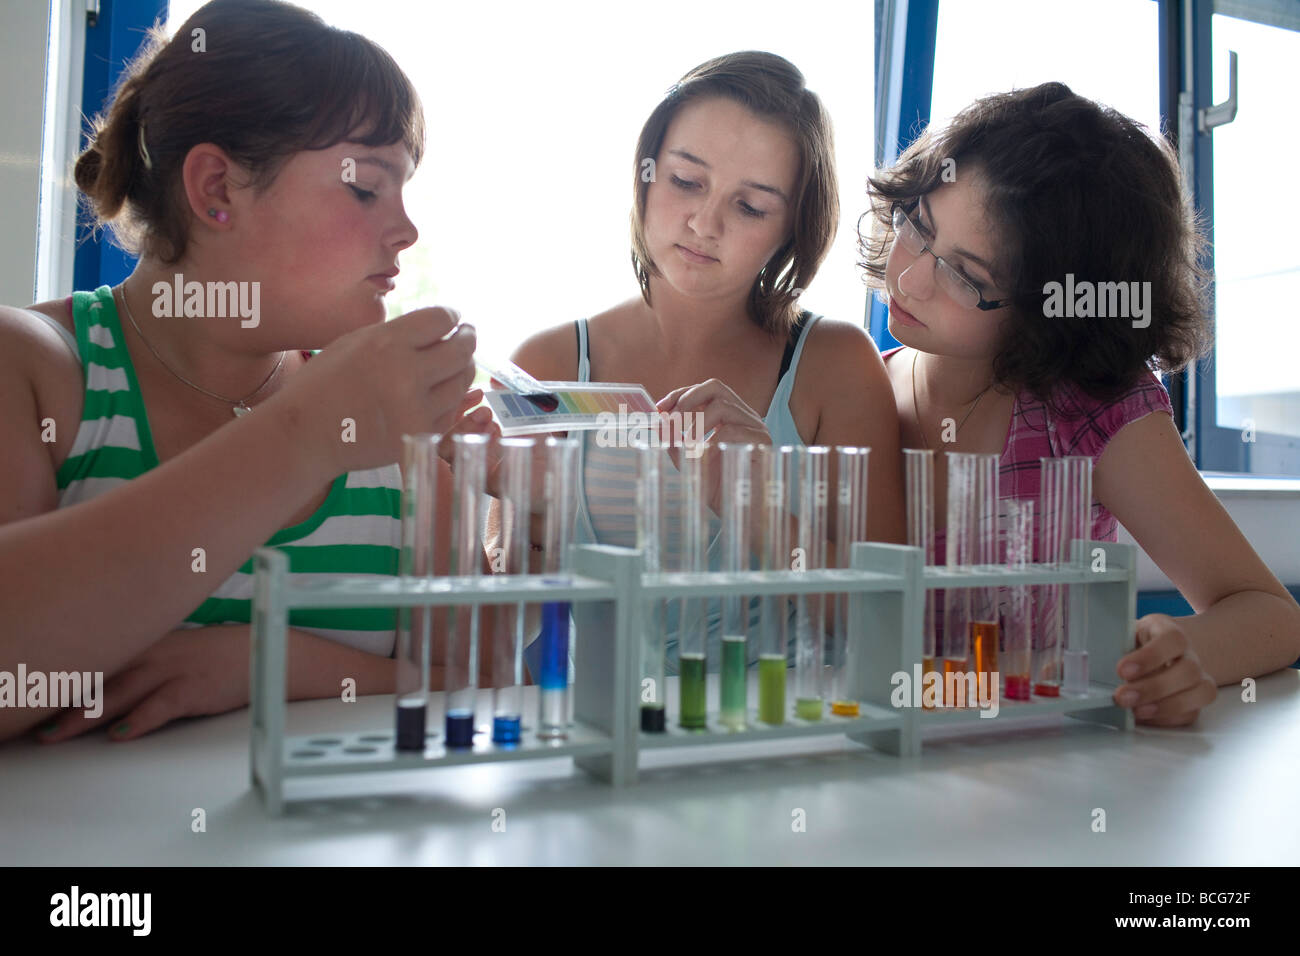 Chemistry classes at school - Stock Image